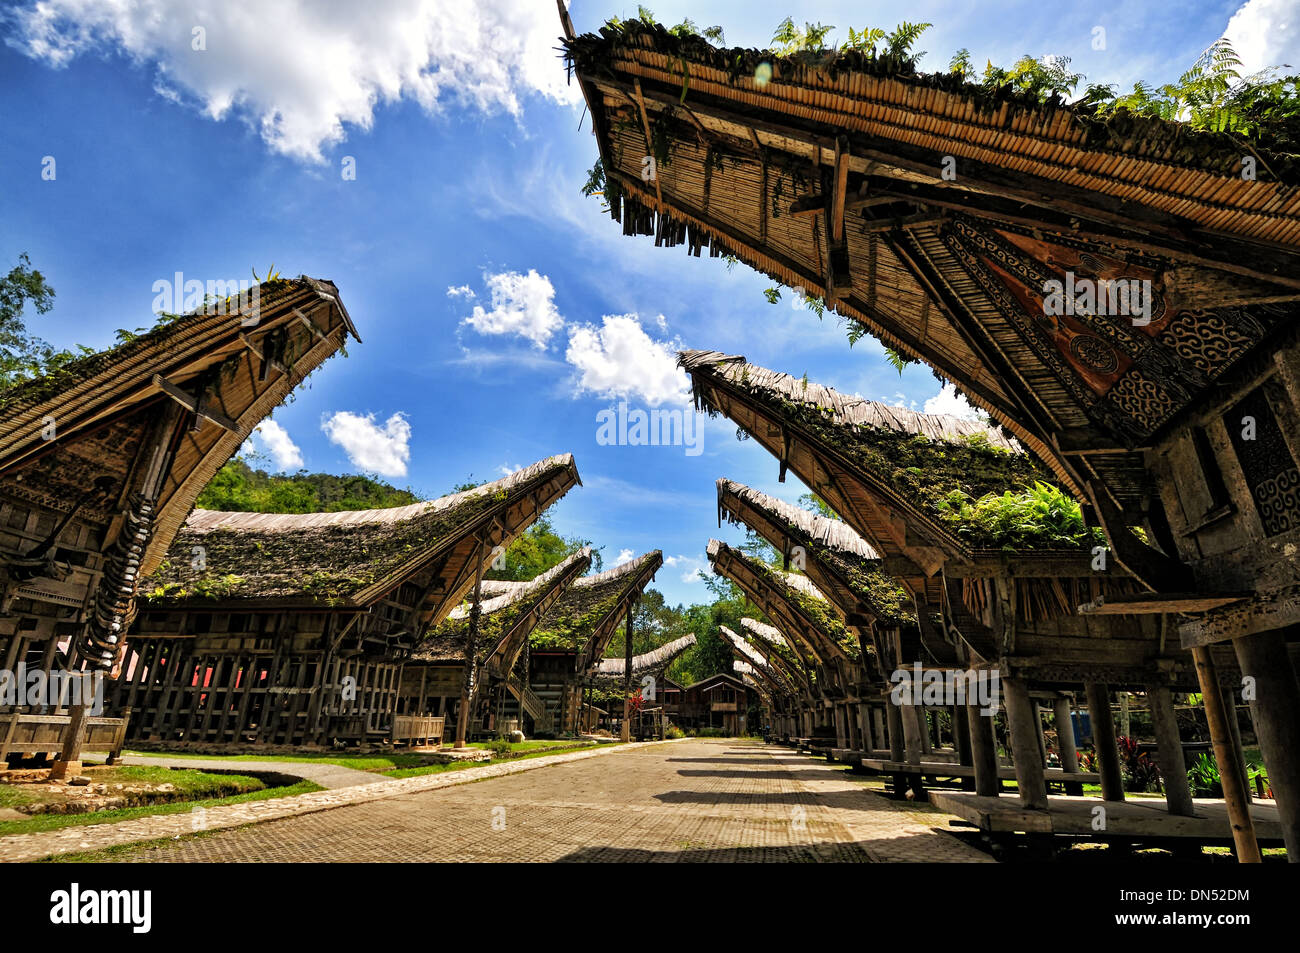 Tongkonan in a Torajan village, South Sulawesi Stock Photo